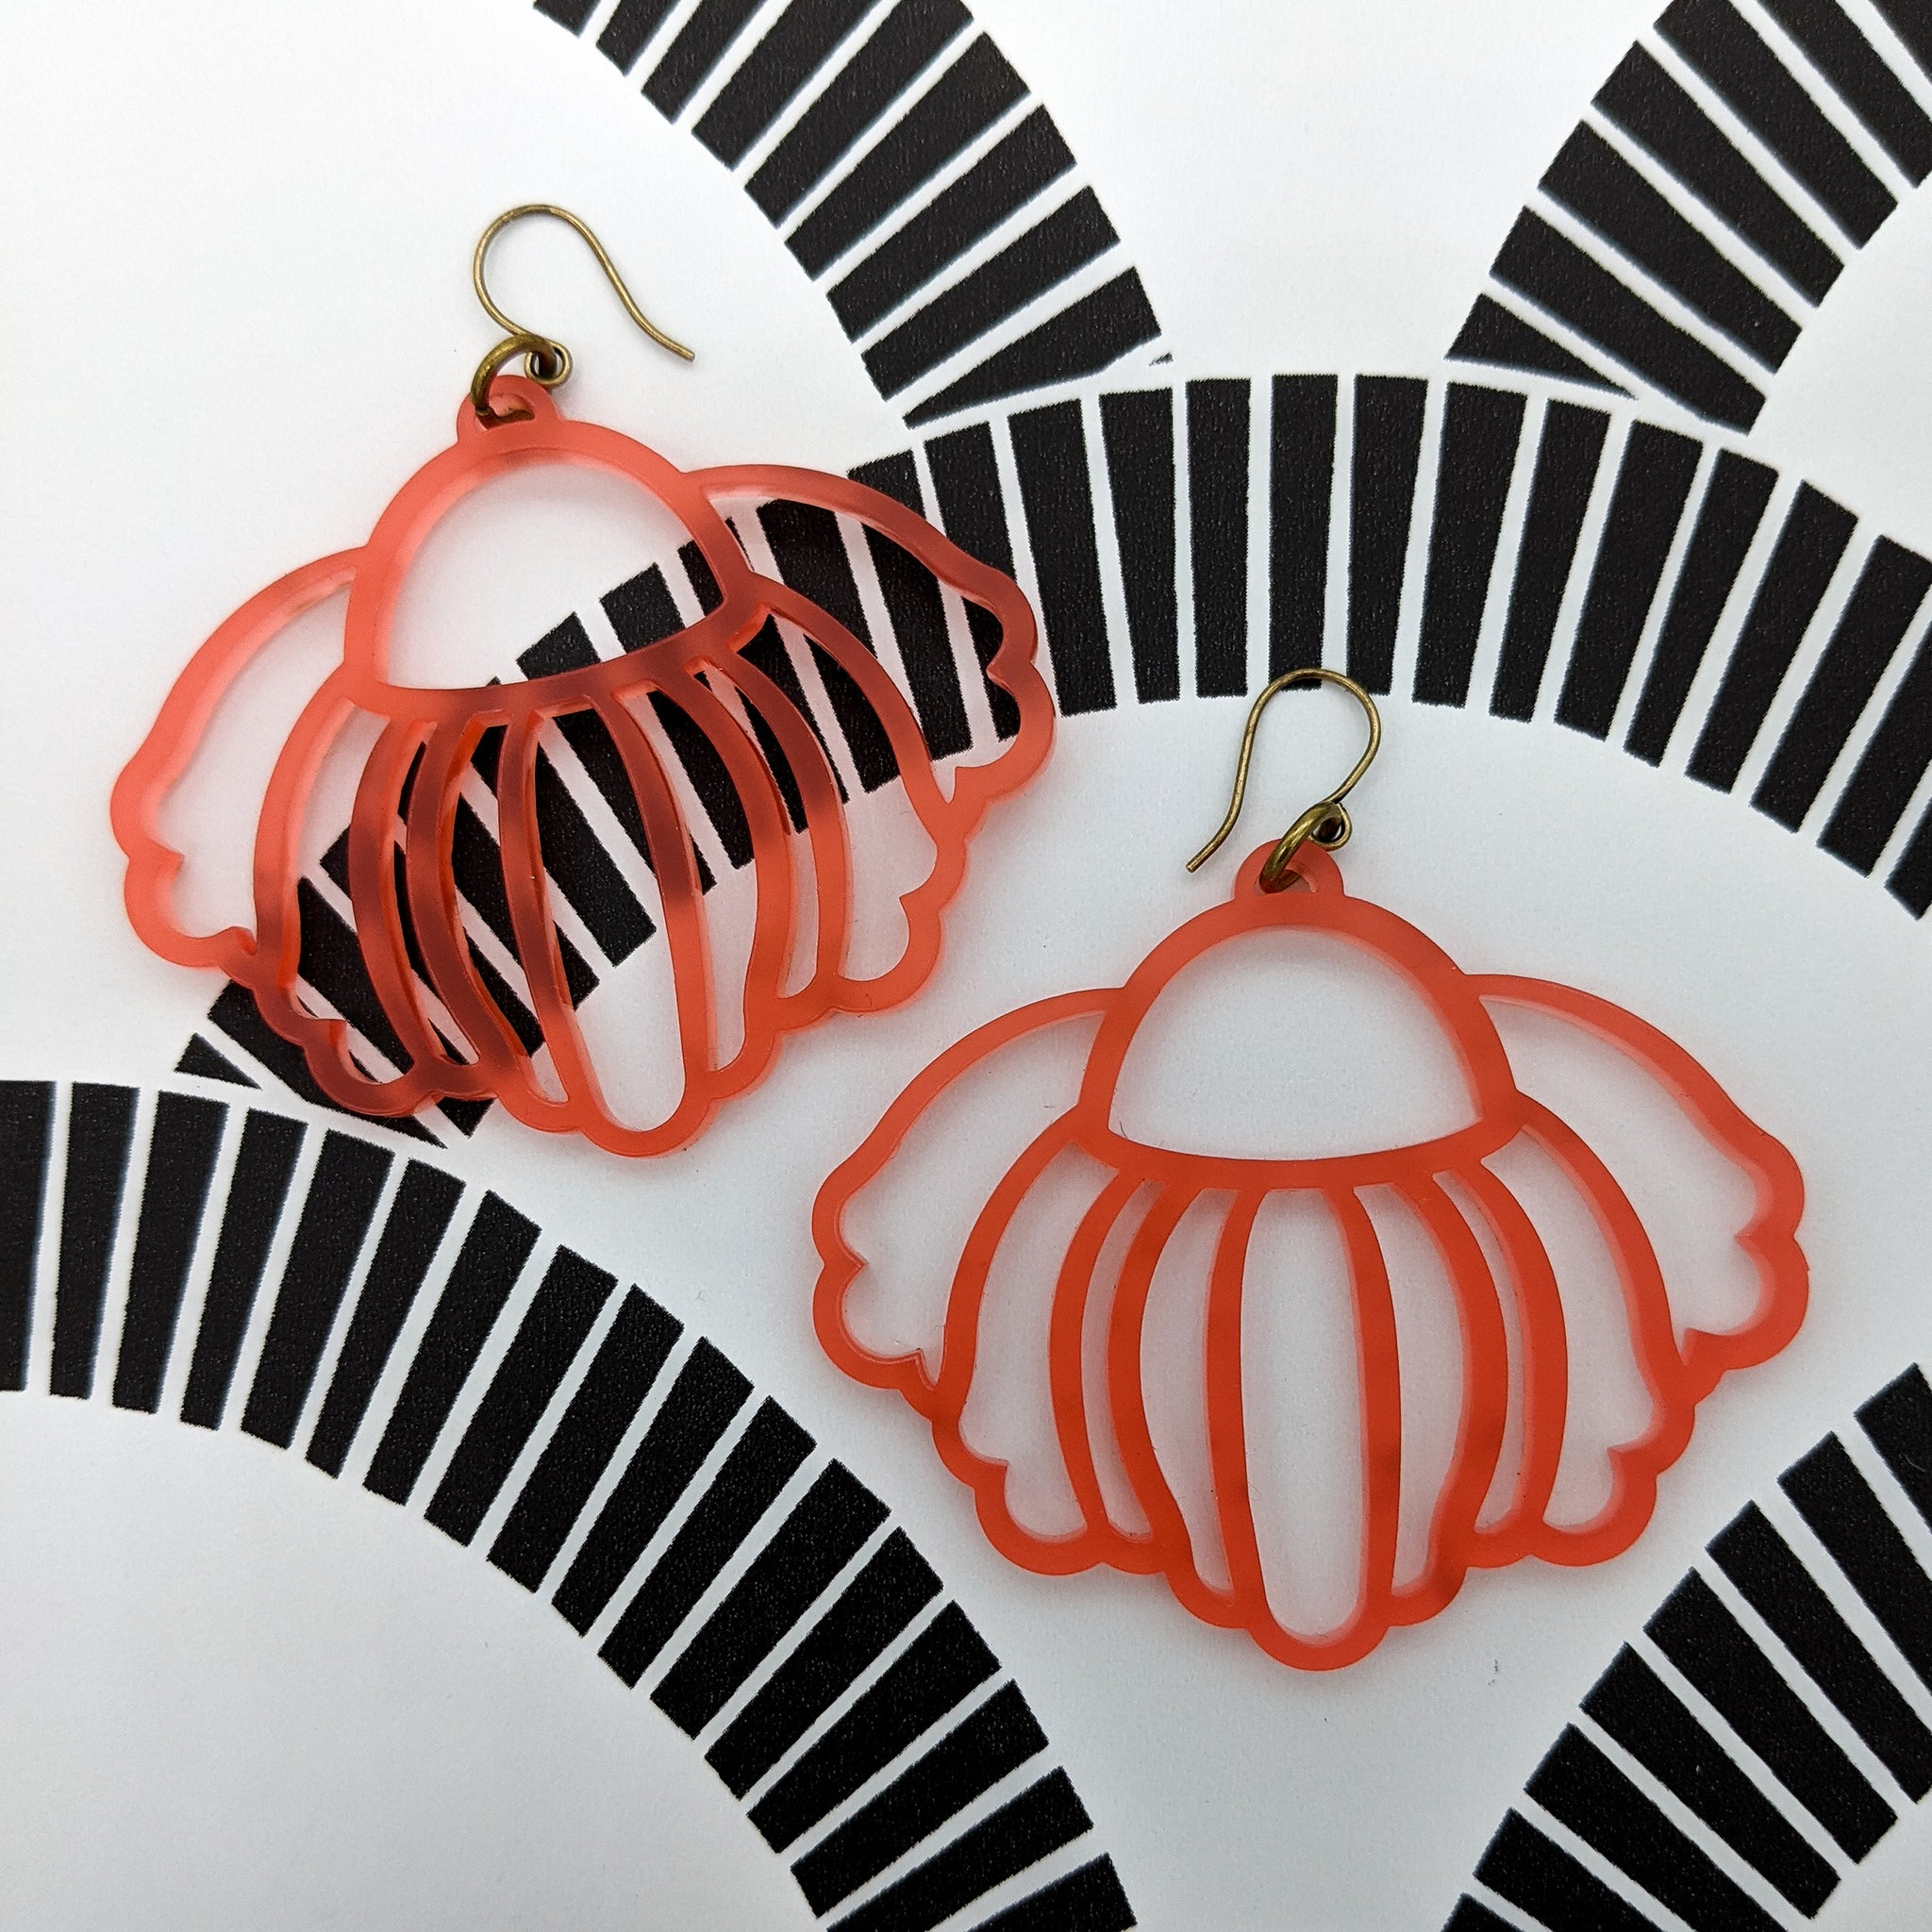 Hanging Flower Acrylic Earrings